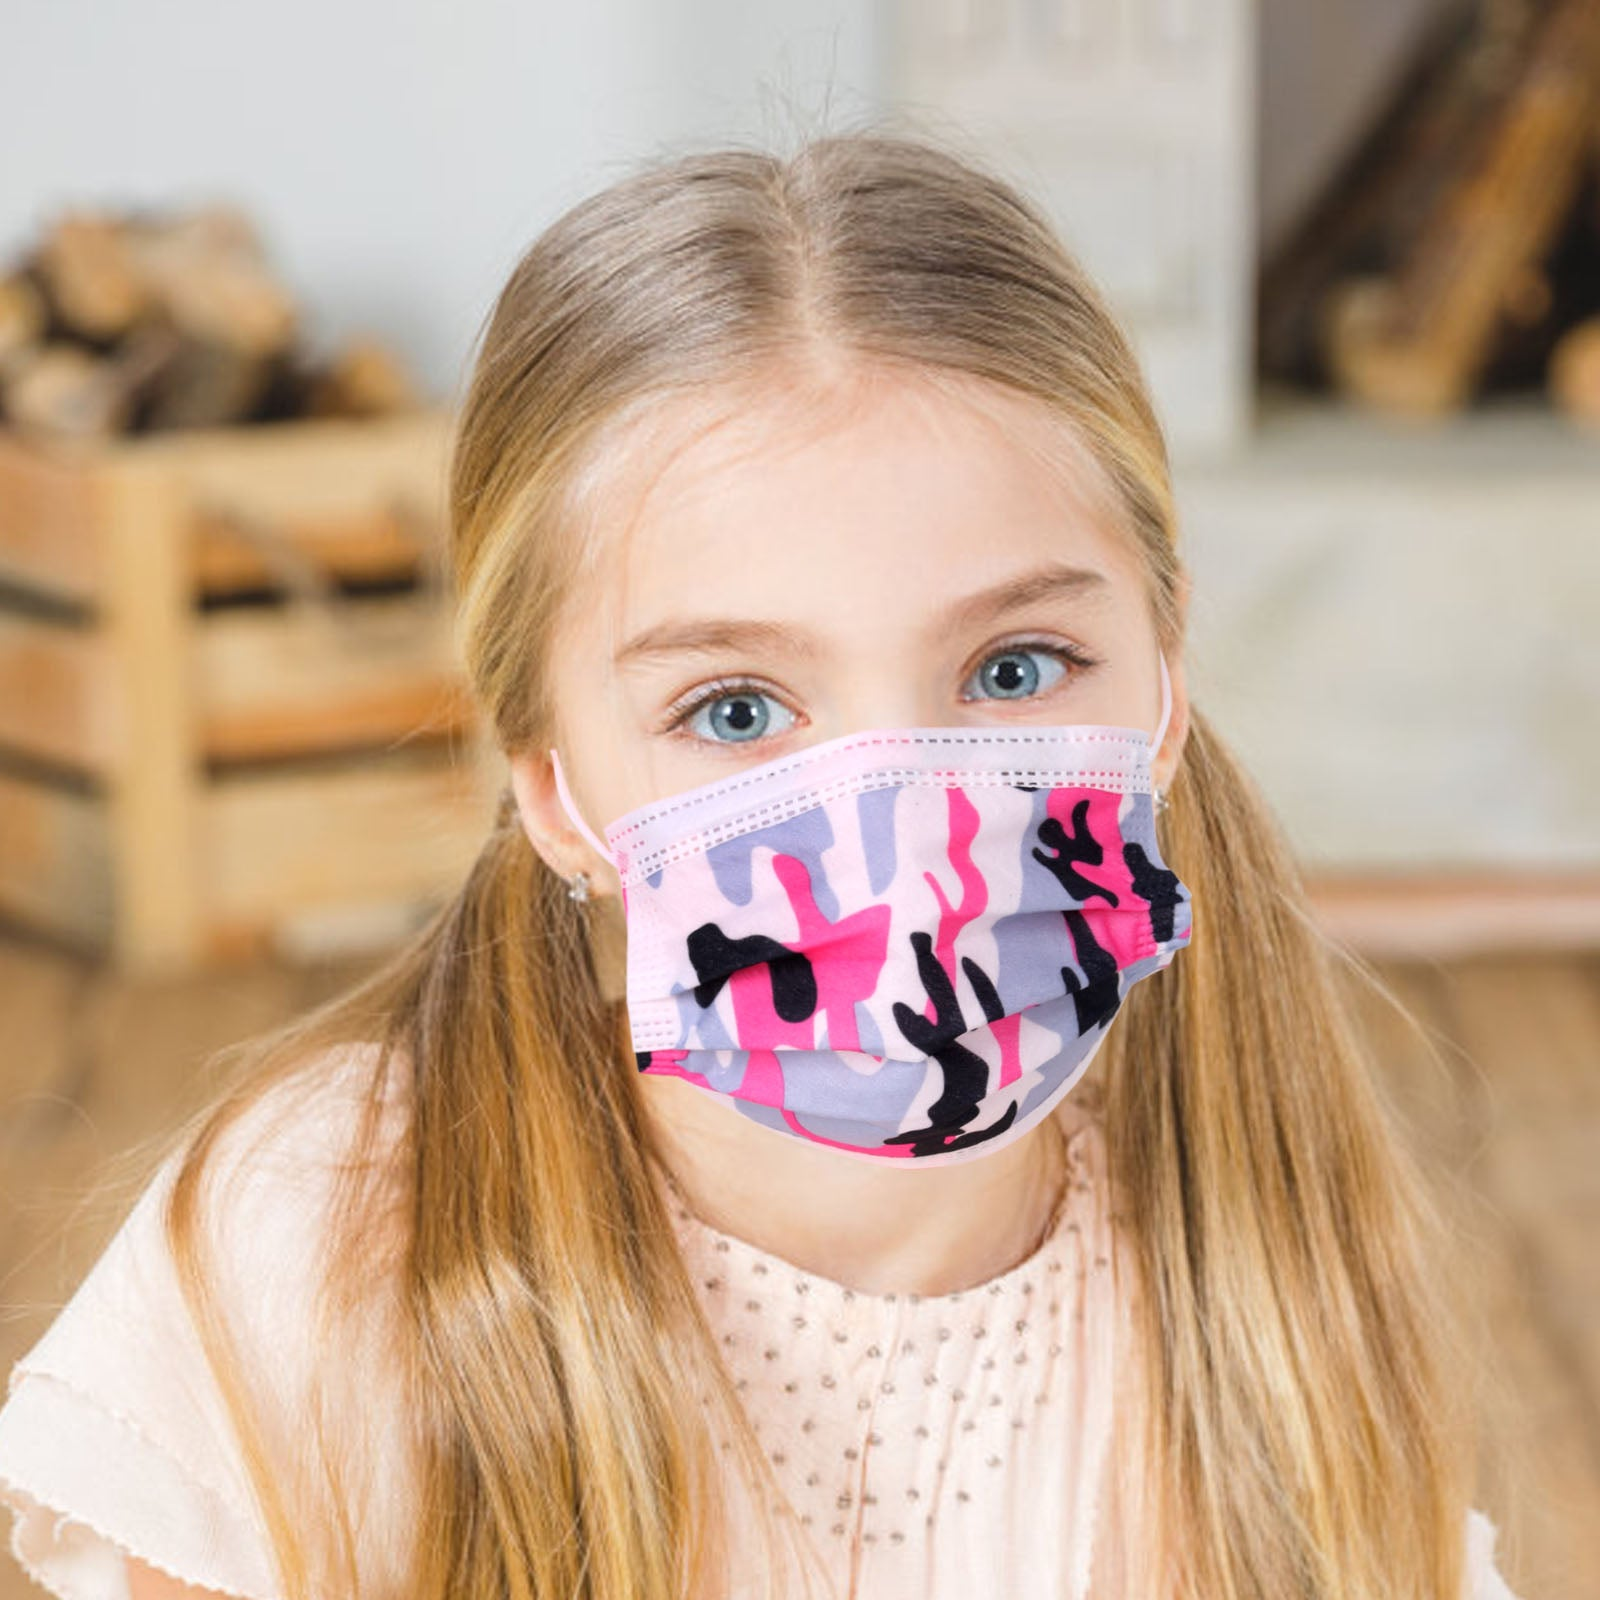 KD-FM-MIX  American Bling Kids 3 Ply Disposable Assorted Color Camo Print Face Mask Non-Medical (20Pcs/Box)